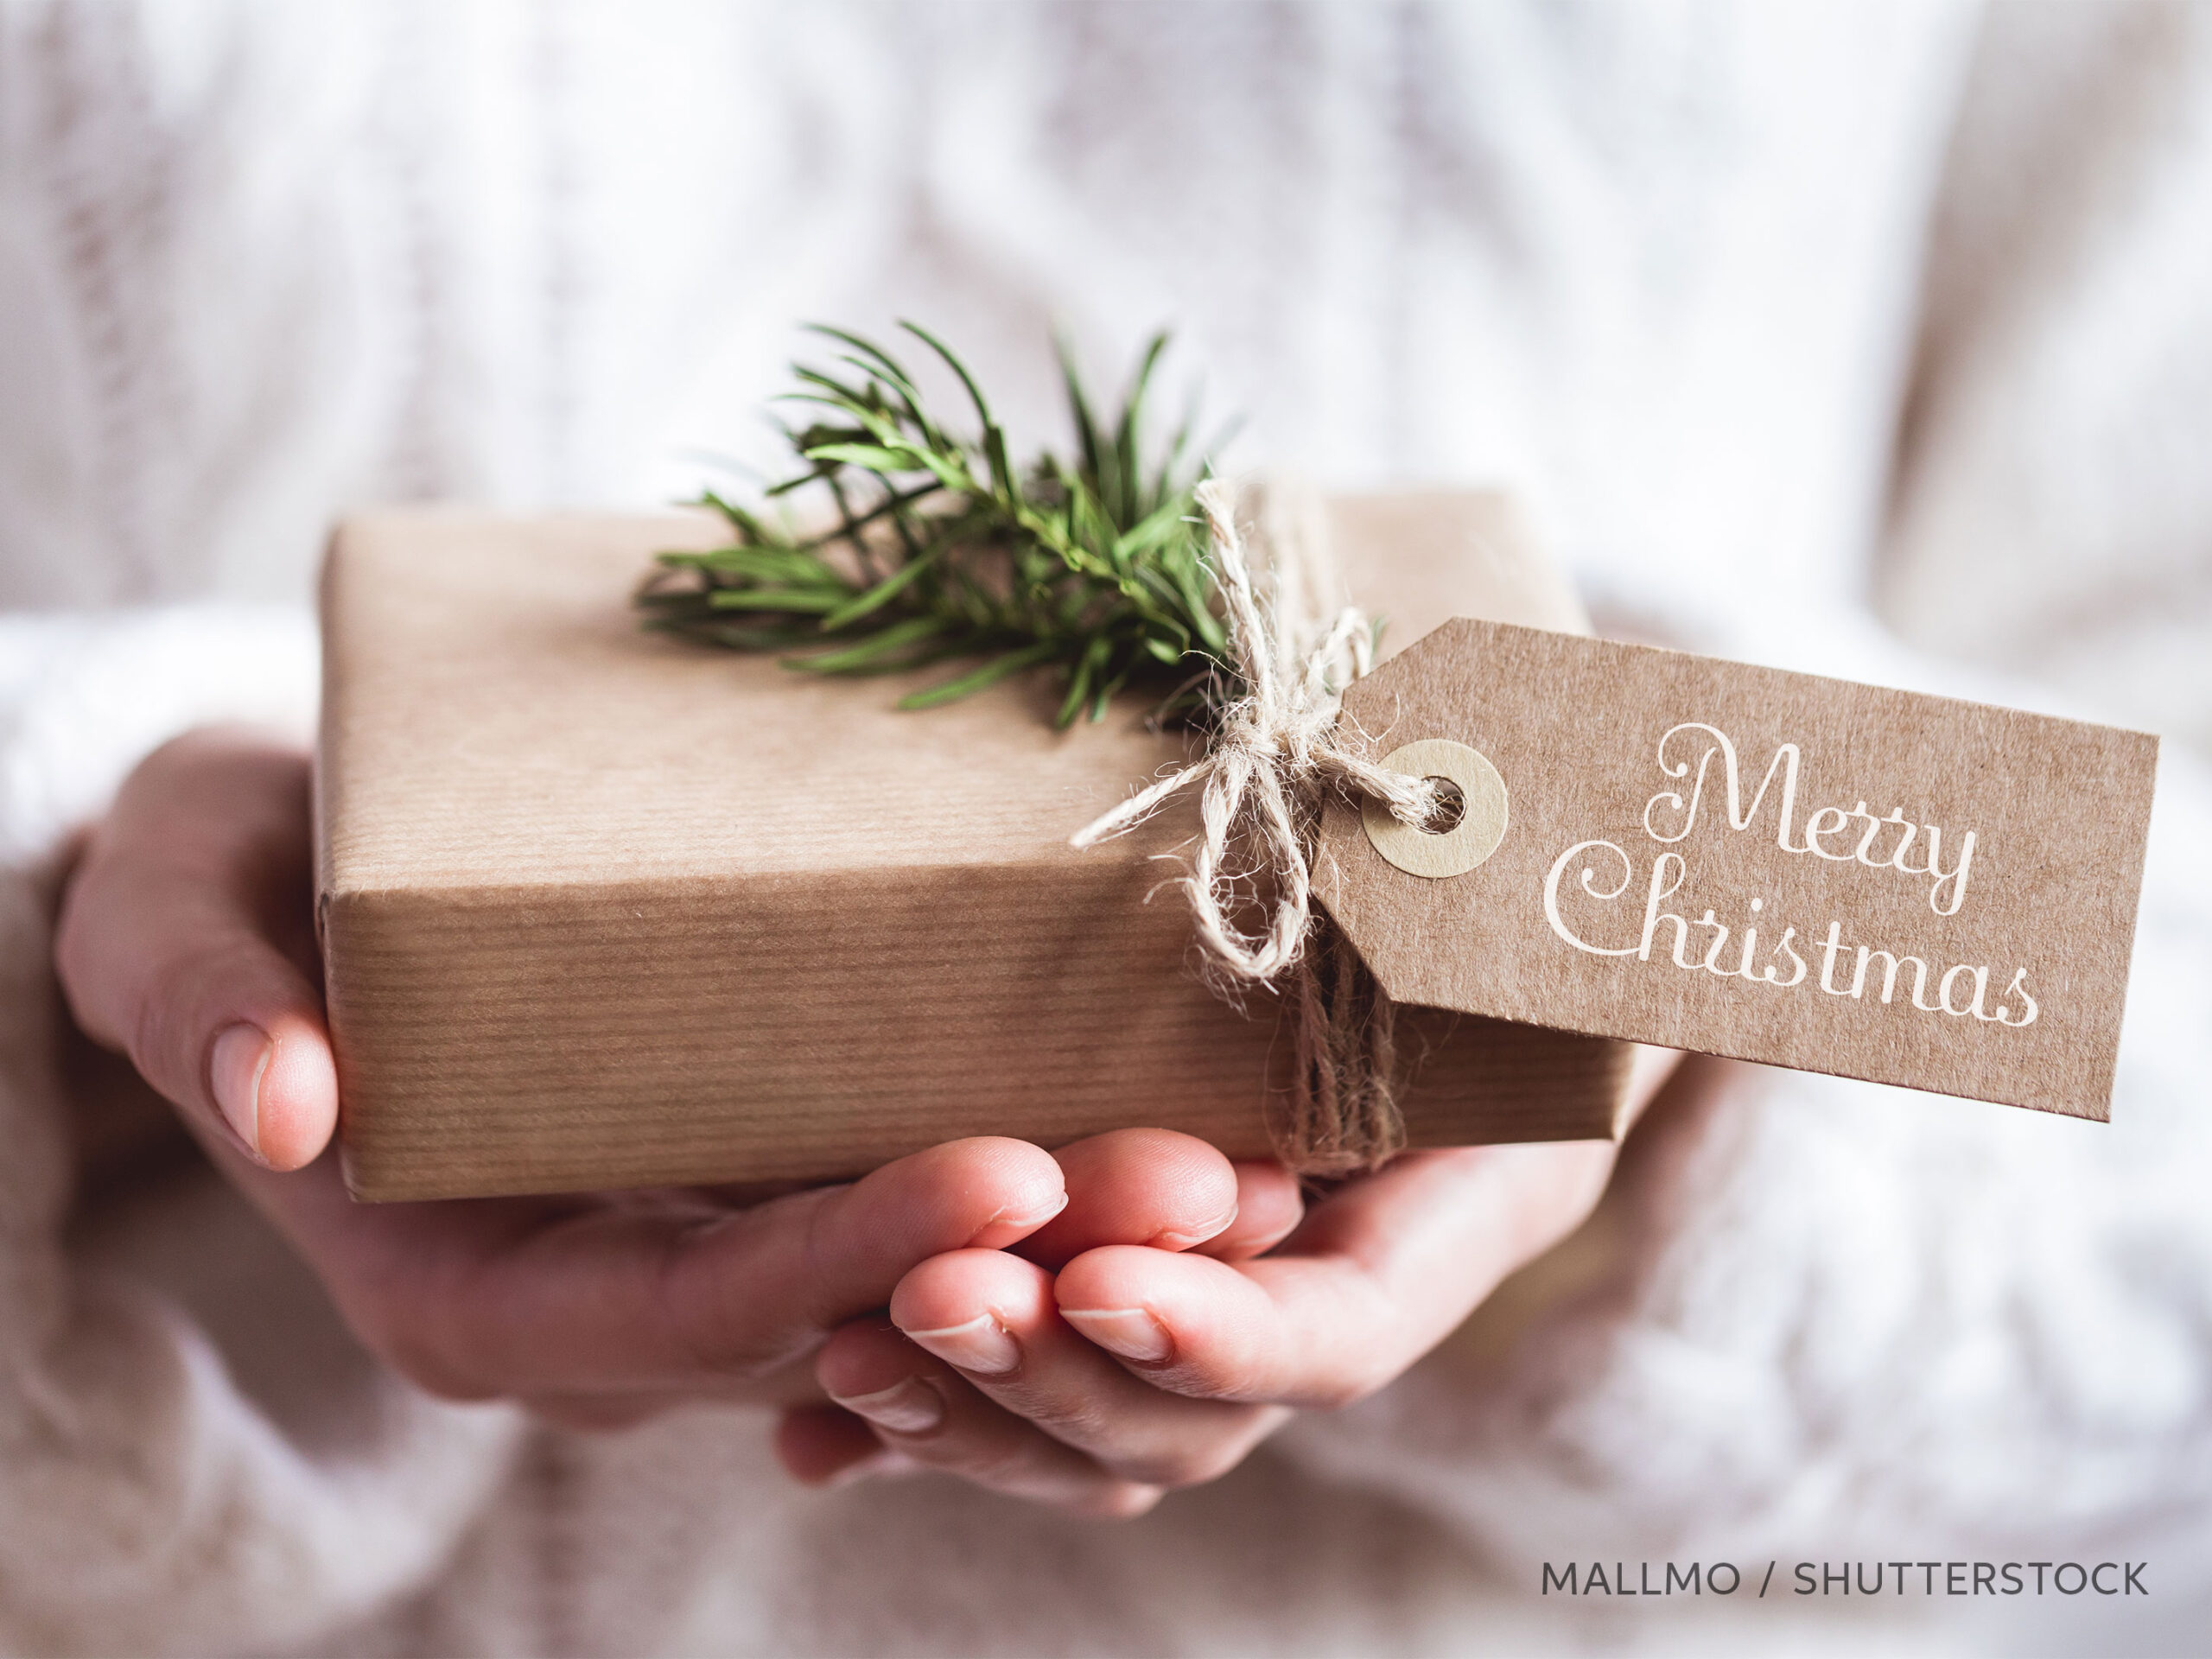 Hands holding a Christmas gift, photo